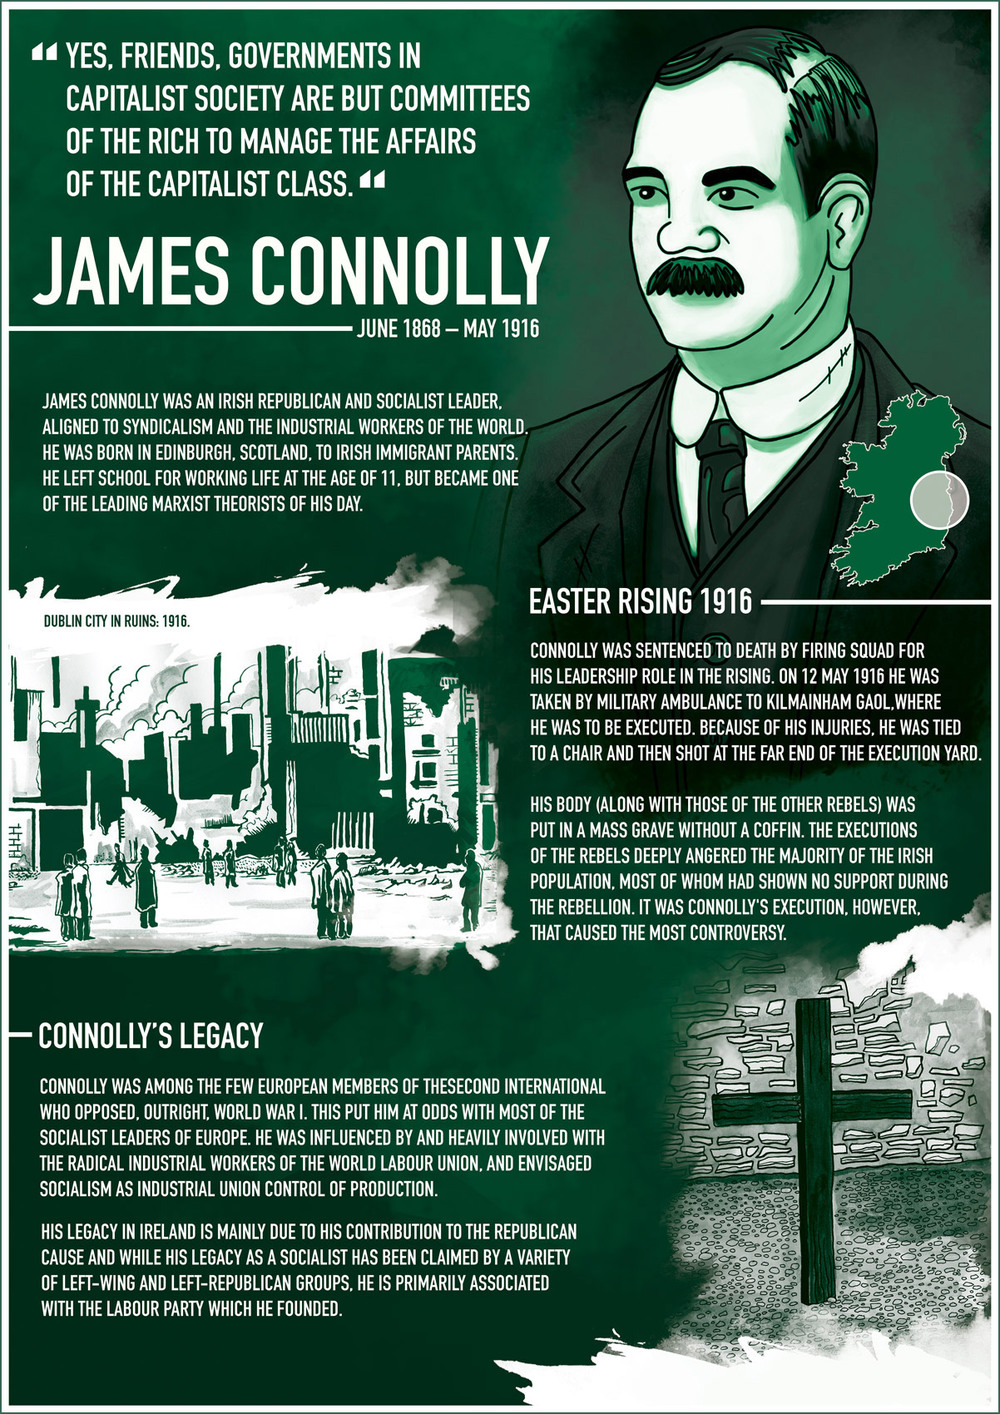 ConnollyProfile.jpg